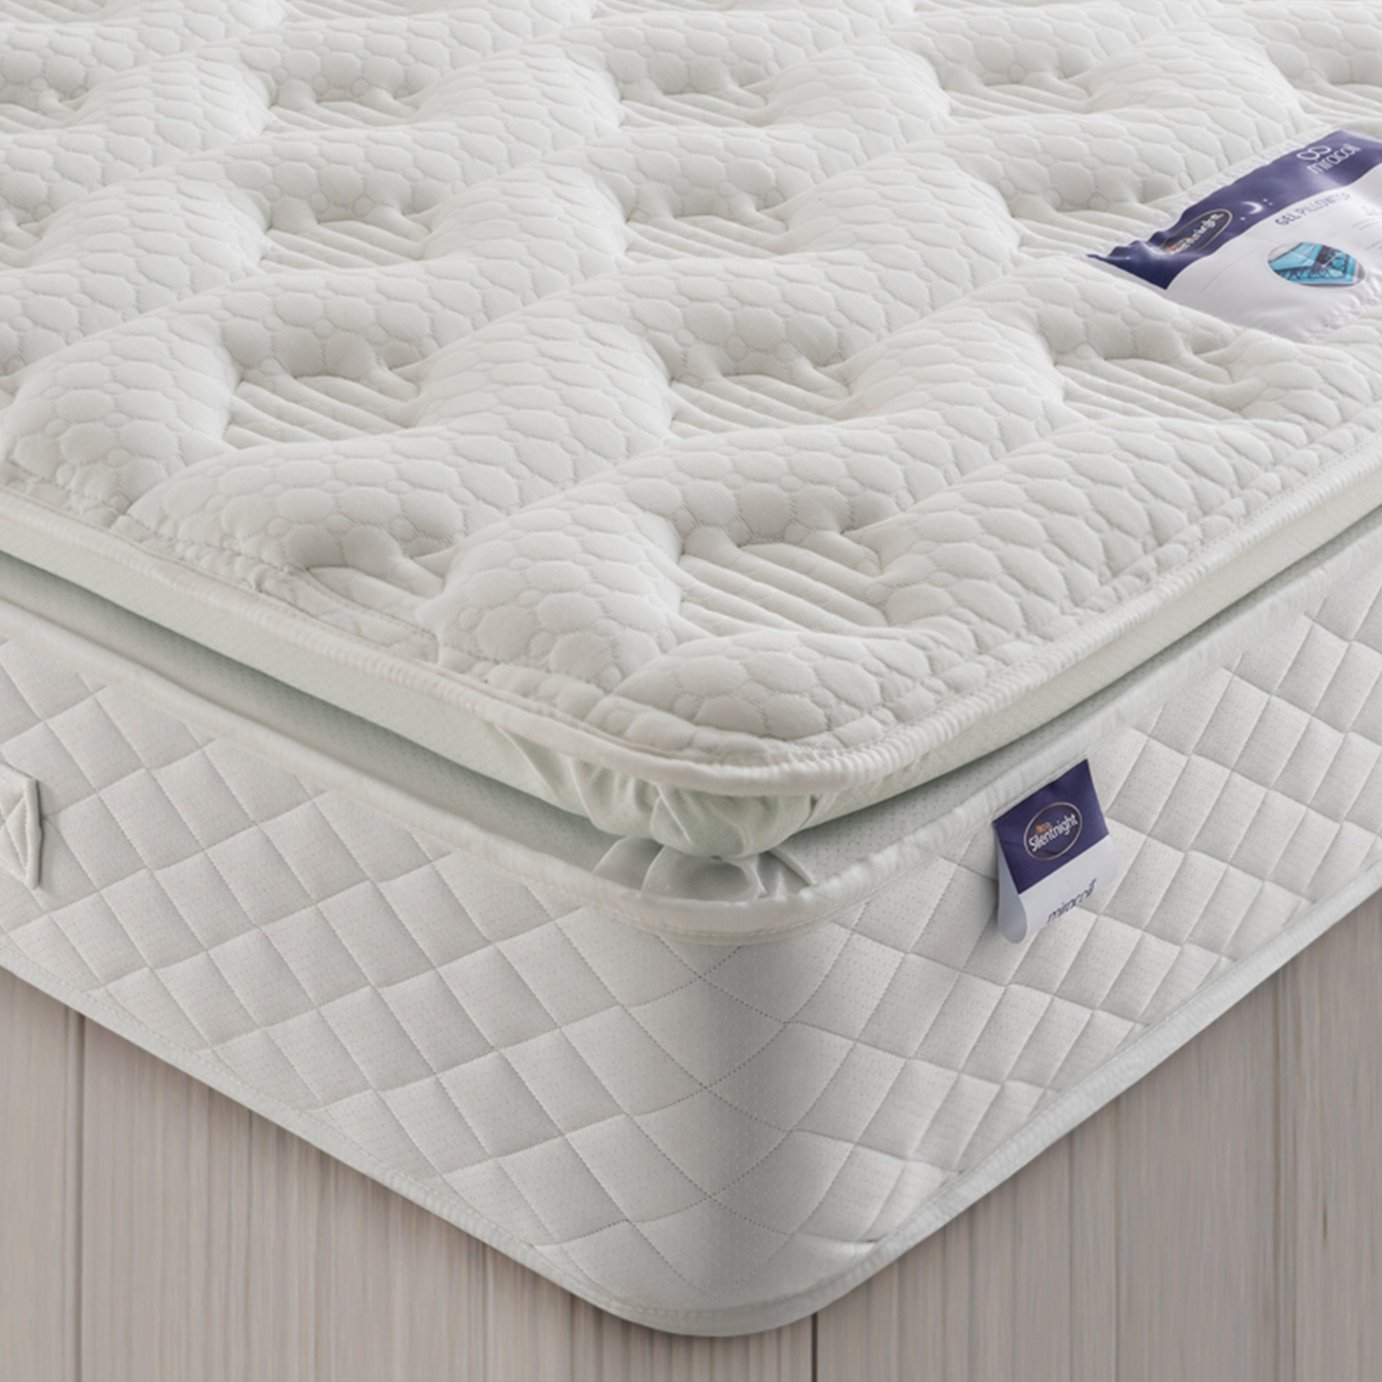 Silentnight Geltex Comfort Sprung Pillowtop Double Mattress